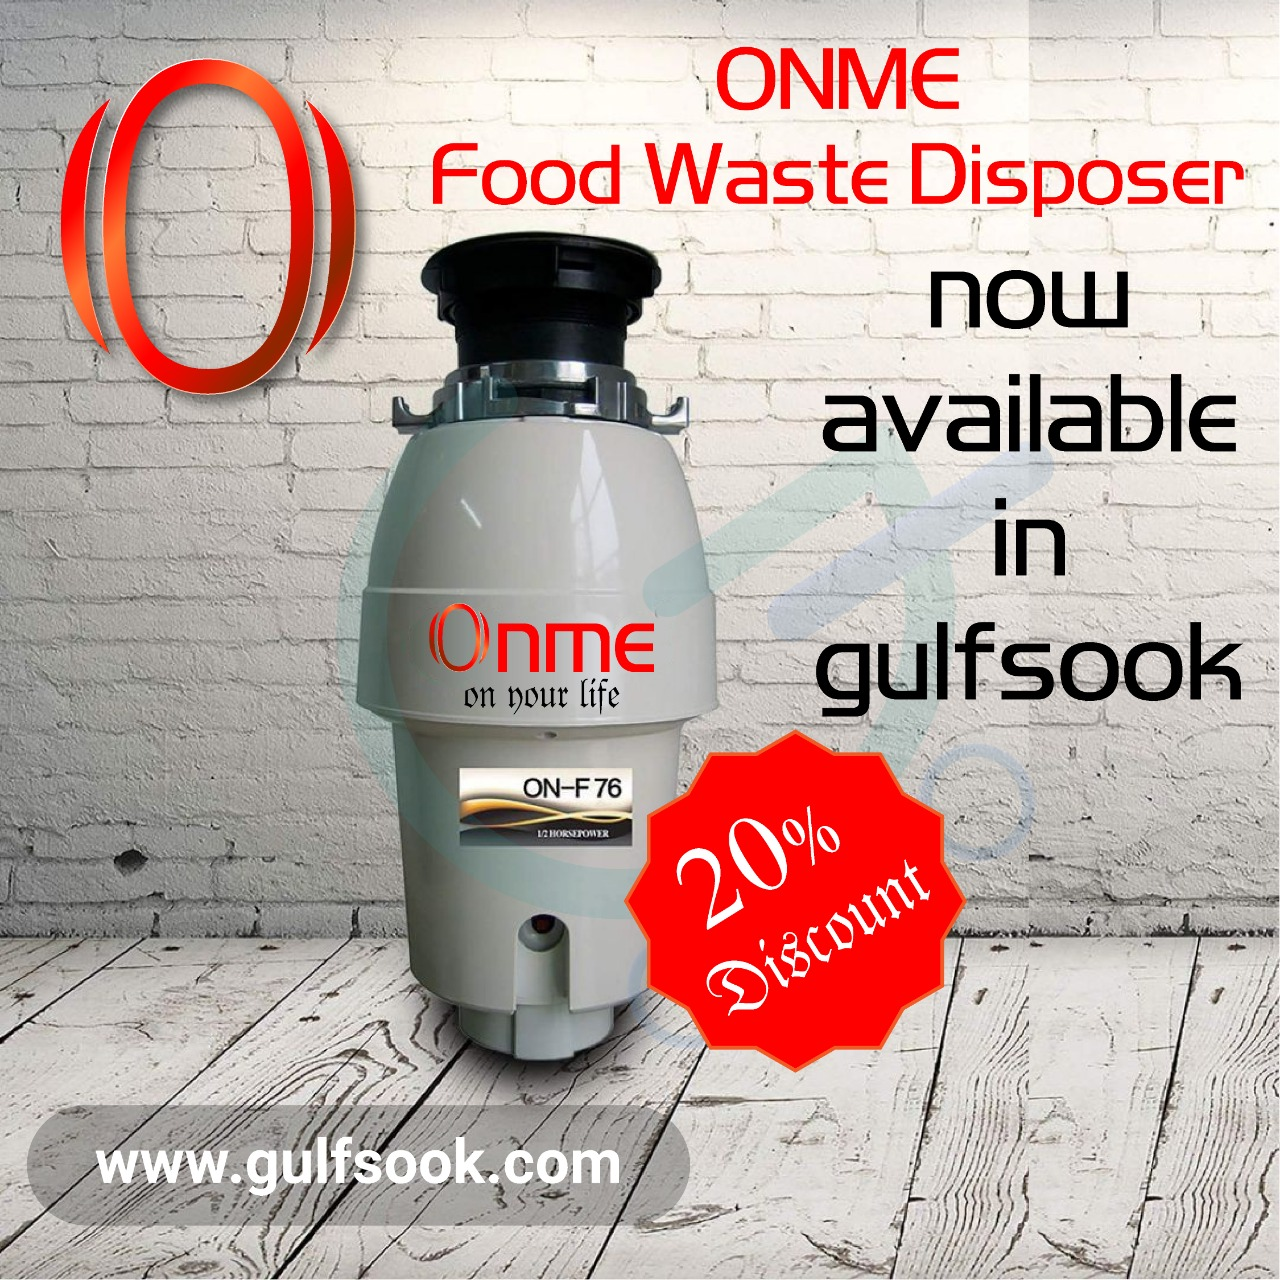 onme food waste dispenser